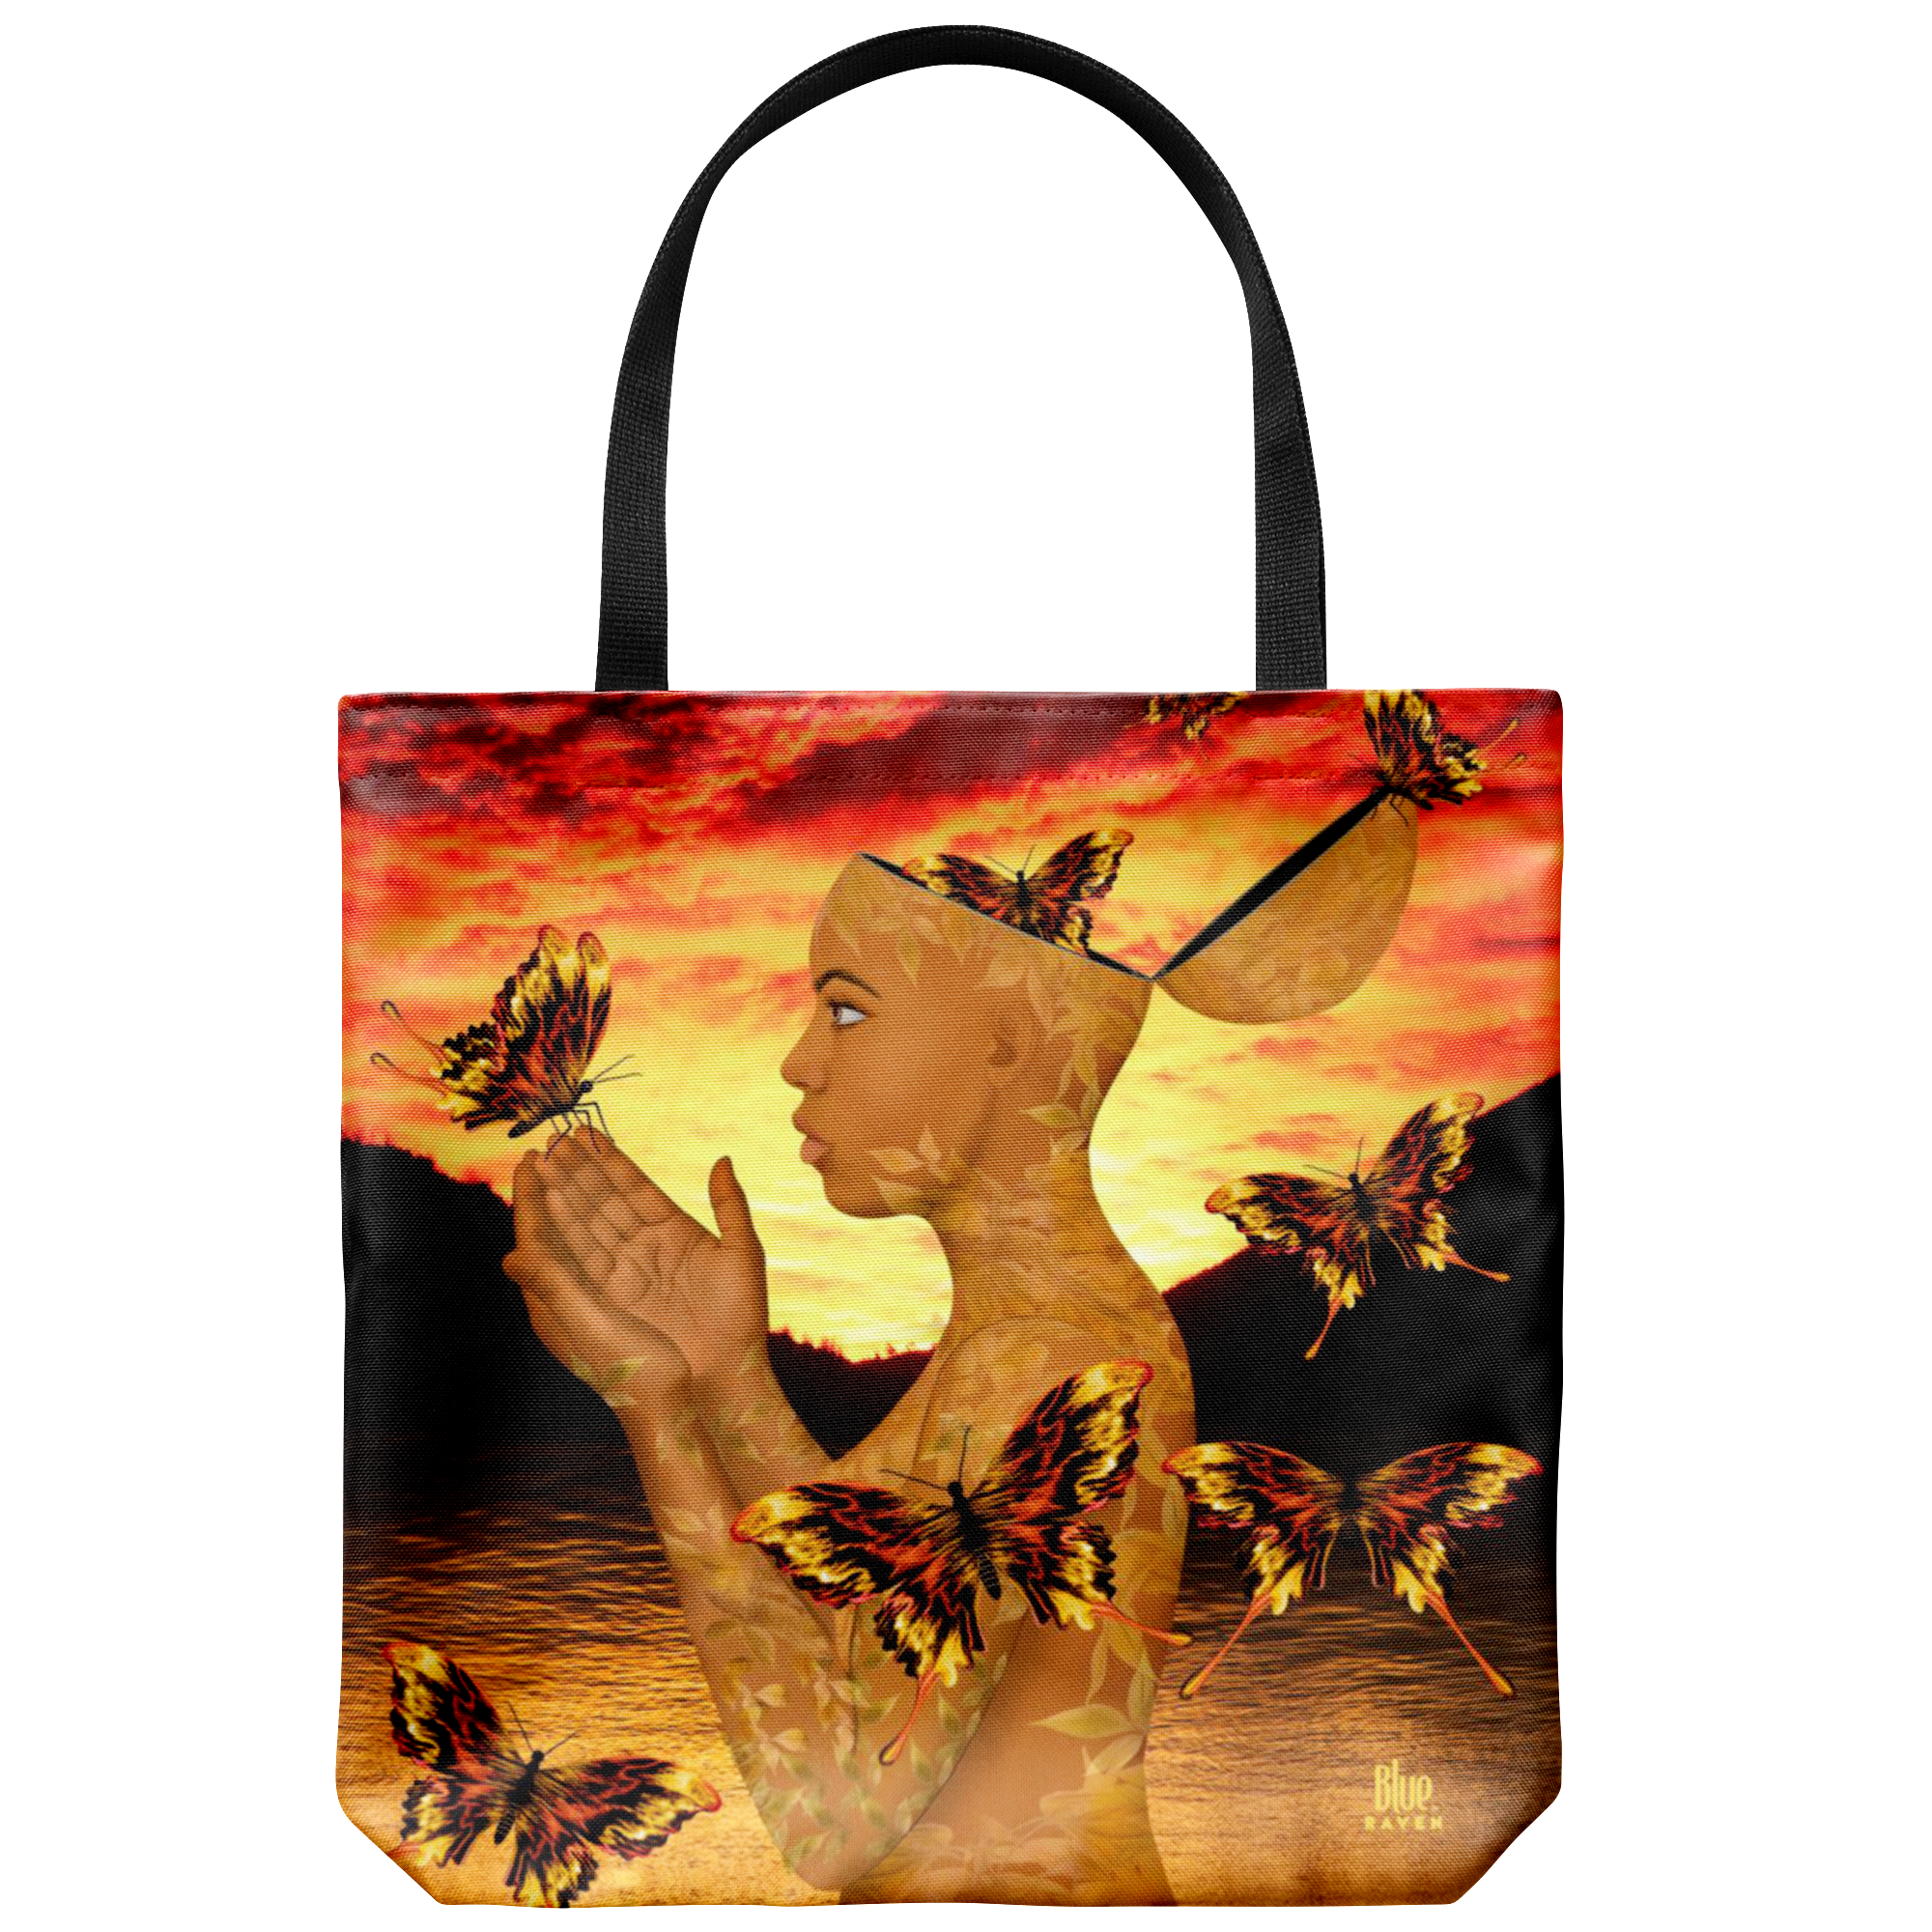 MOTHER EARTH - TOTE